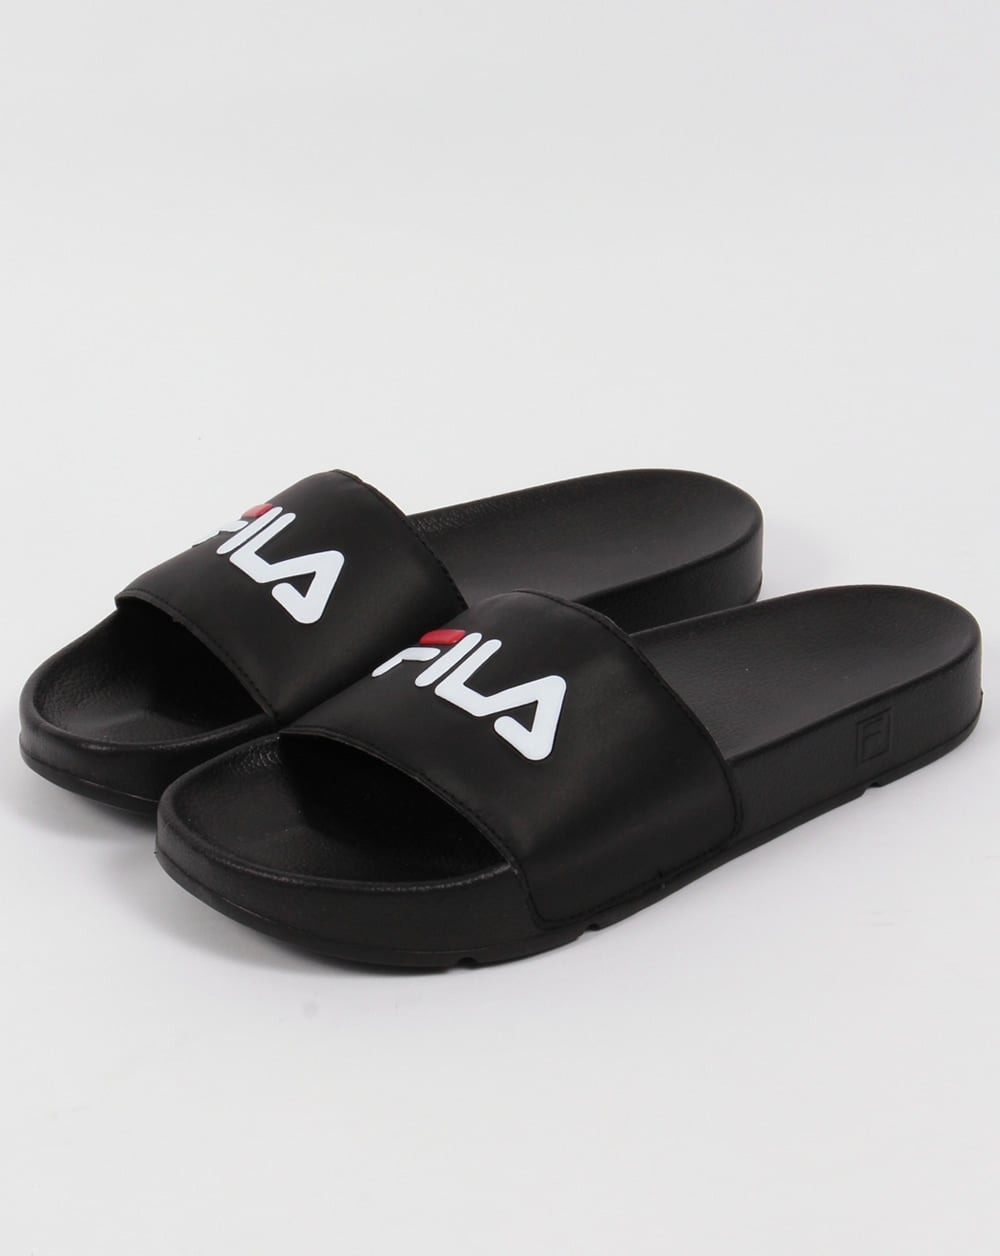 Fila Vintage Drifter Pool Sliders Black